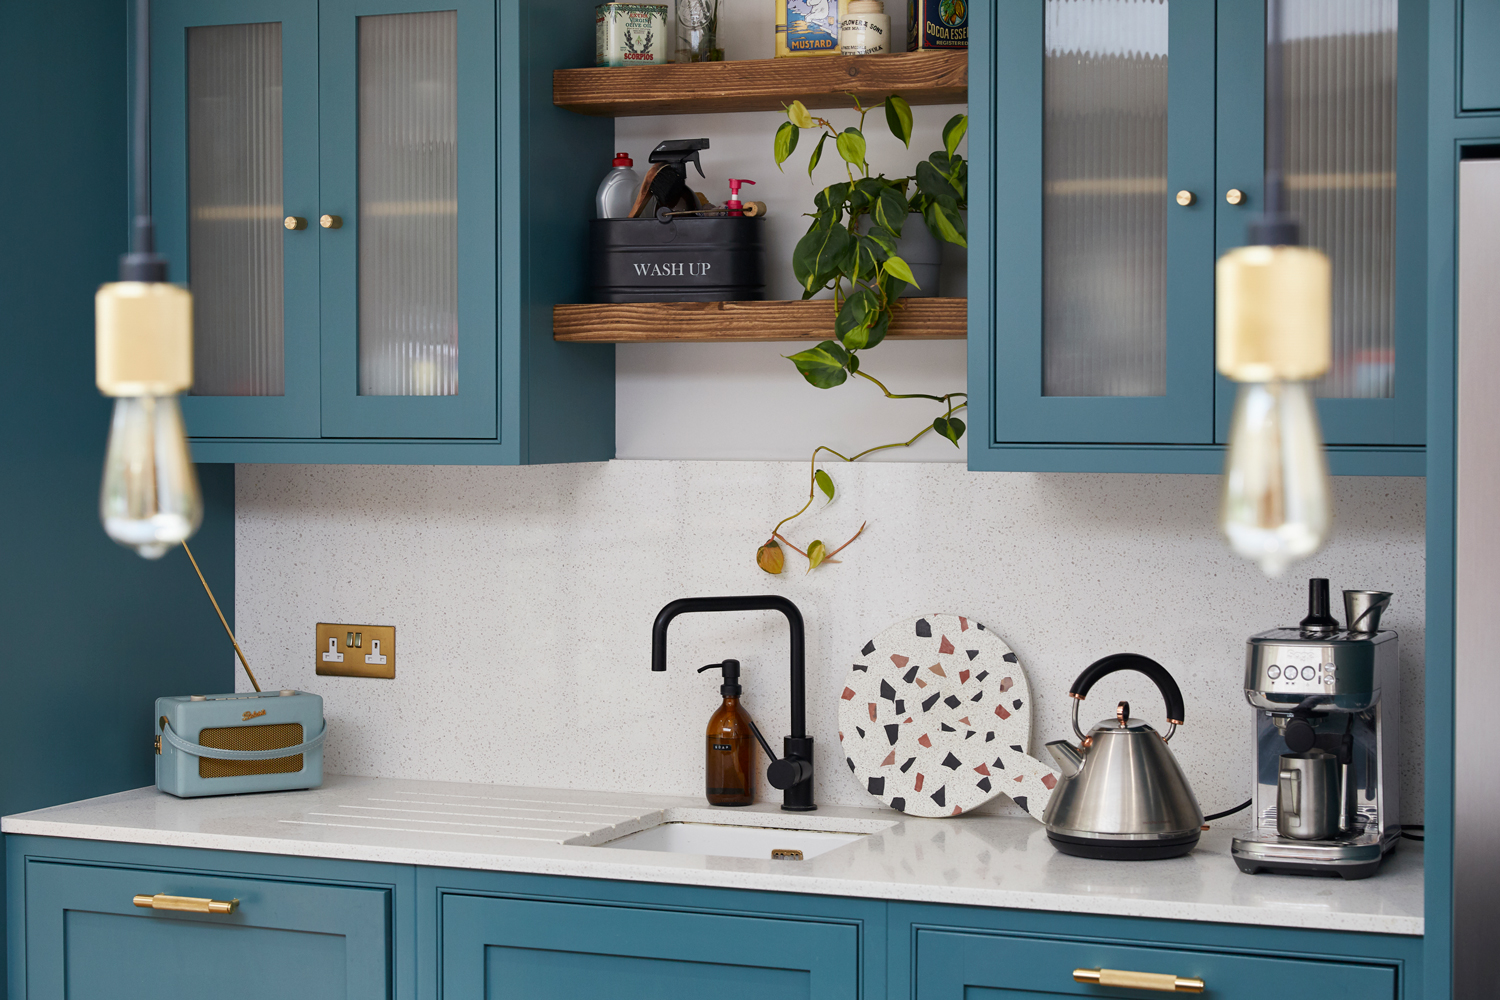 Reclaimed rustic pine scaffold board shelves sit above sink unit with quartz worktop